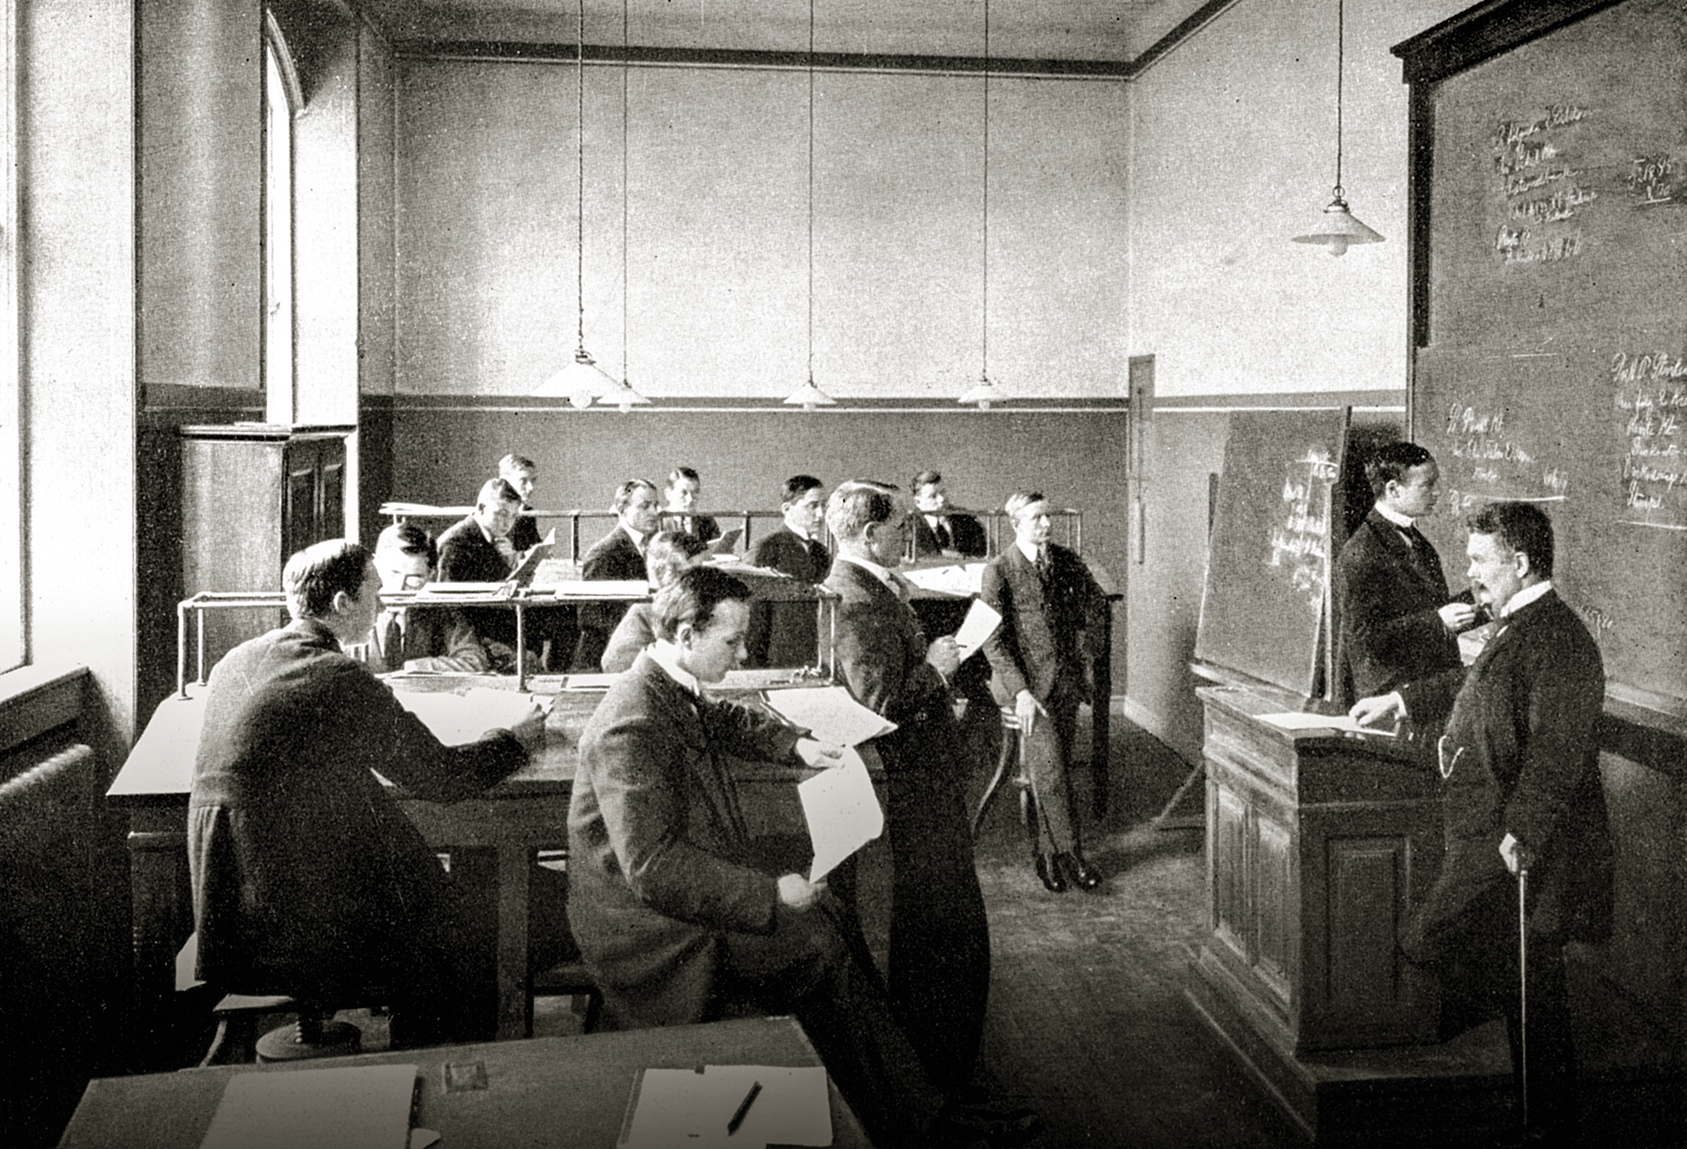 Accountants' class back in 1920s